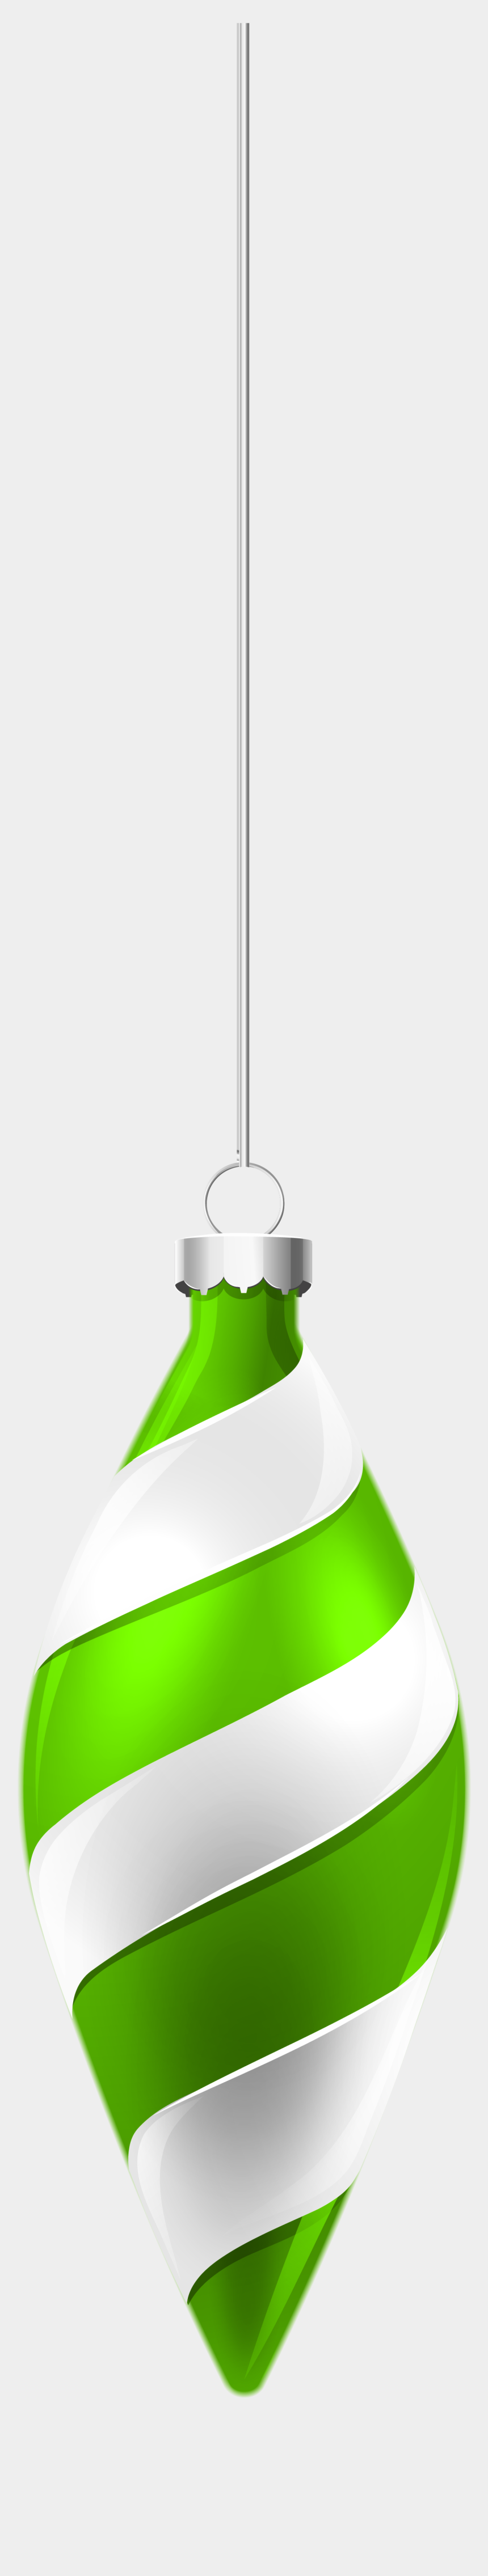 christmas decorations clipart, Cartoons - White And Green Christmas Ornament Png Clipart Image - Green Christmas Ornament Png